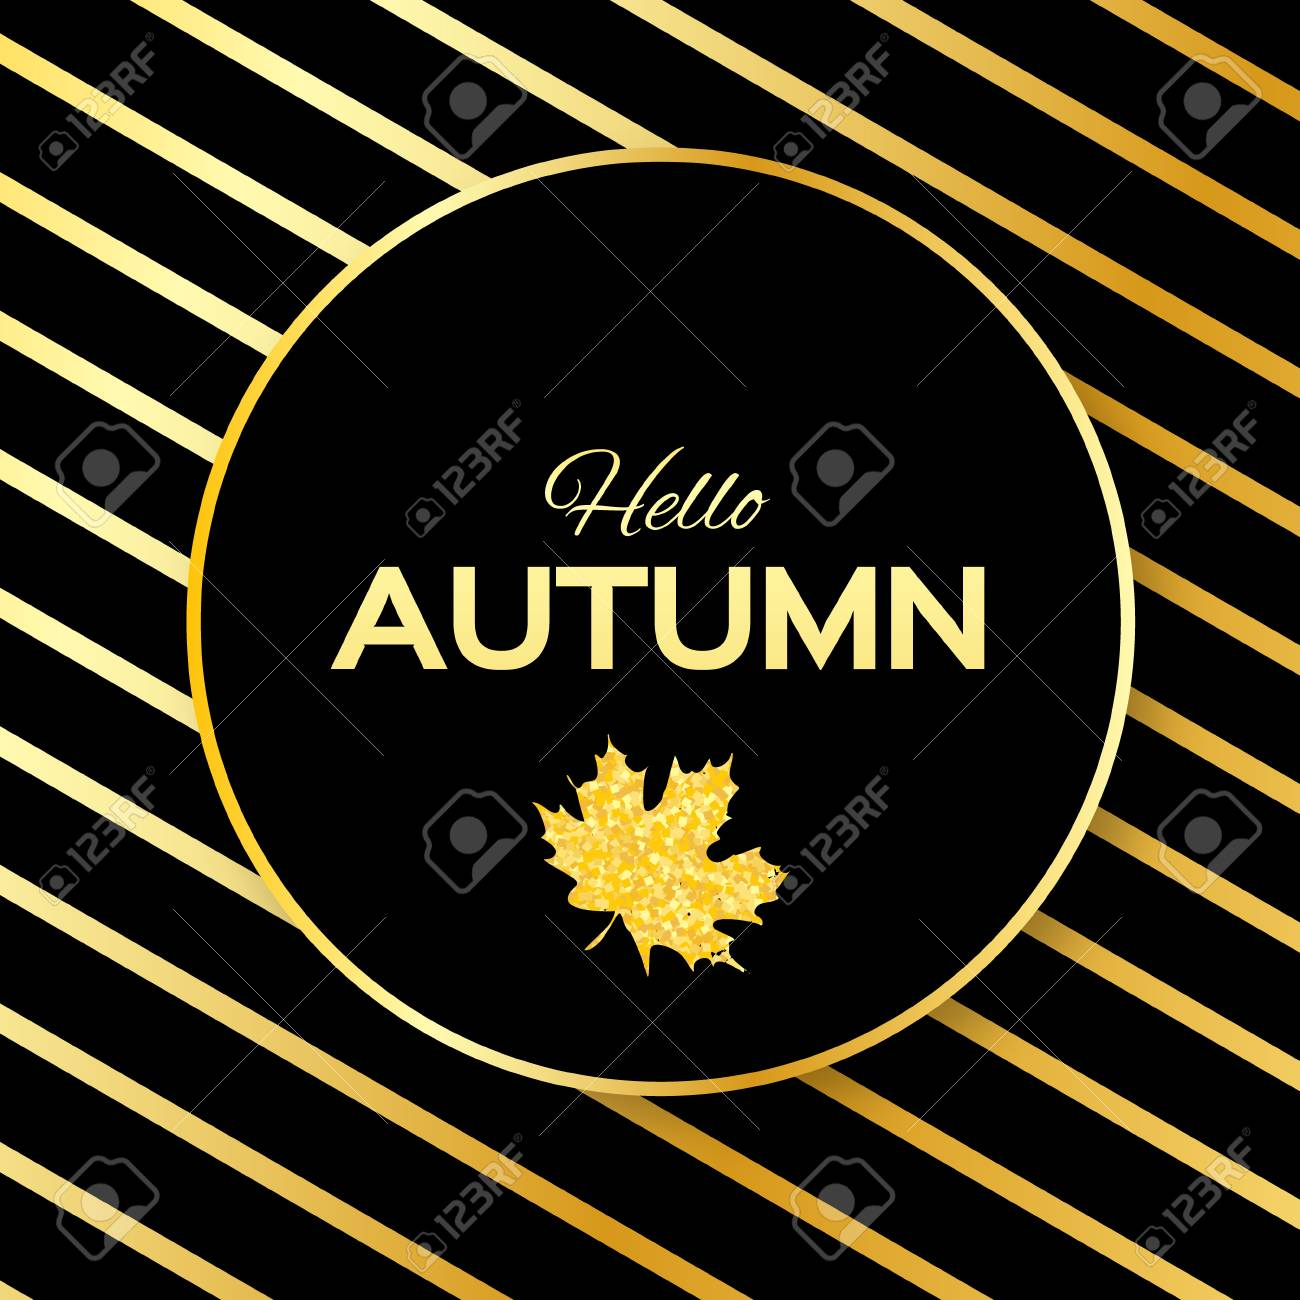 Hello Autumn. Greeting Card With Seasonal Maple Leaves. Fall Leaves Banner  With Golden Glitter